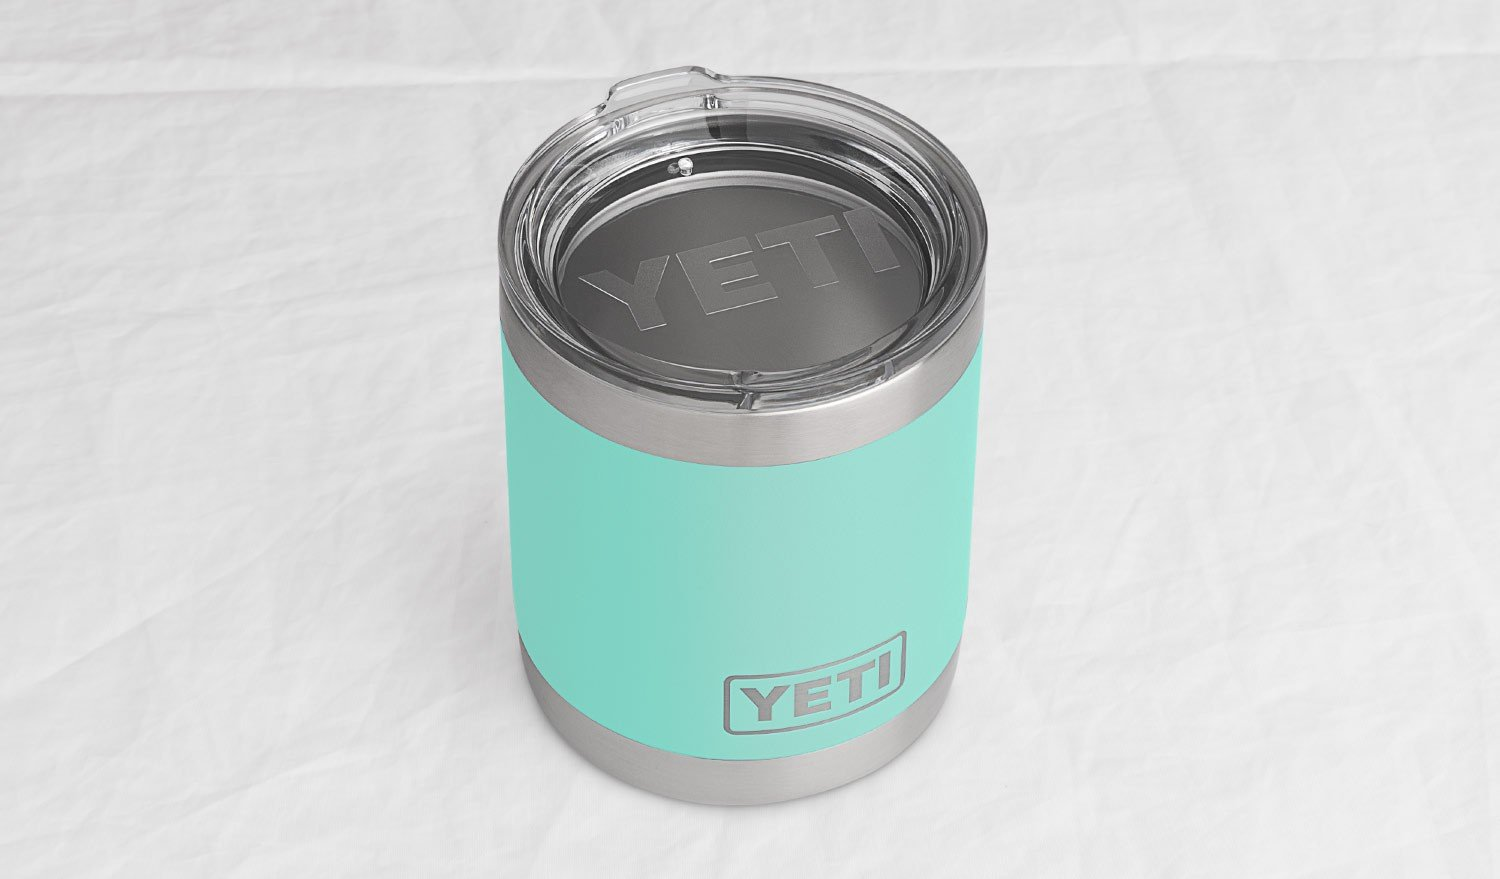 YETI Rambler 10oz Vacuum Insulated Stainless Steel Lowball with Lid, Seafoam DuraCoat by YETI (Image #4)